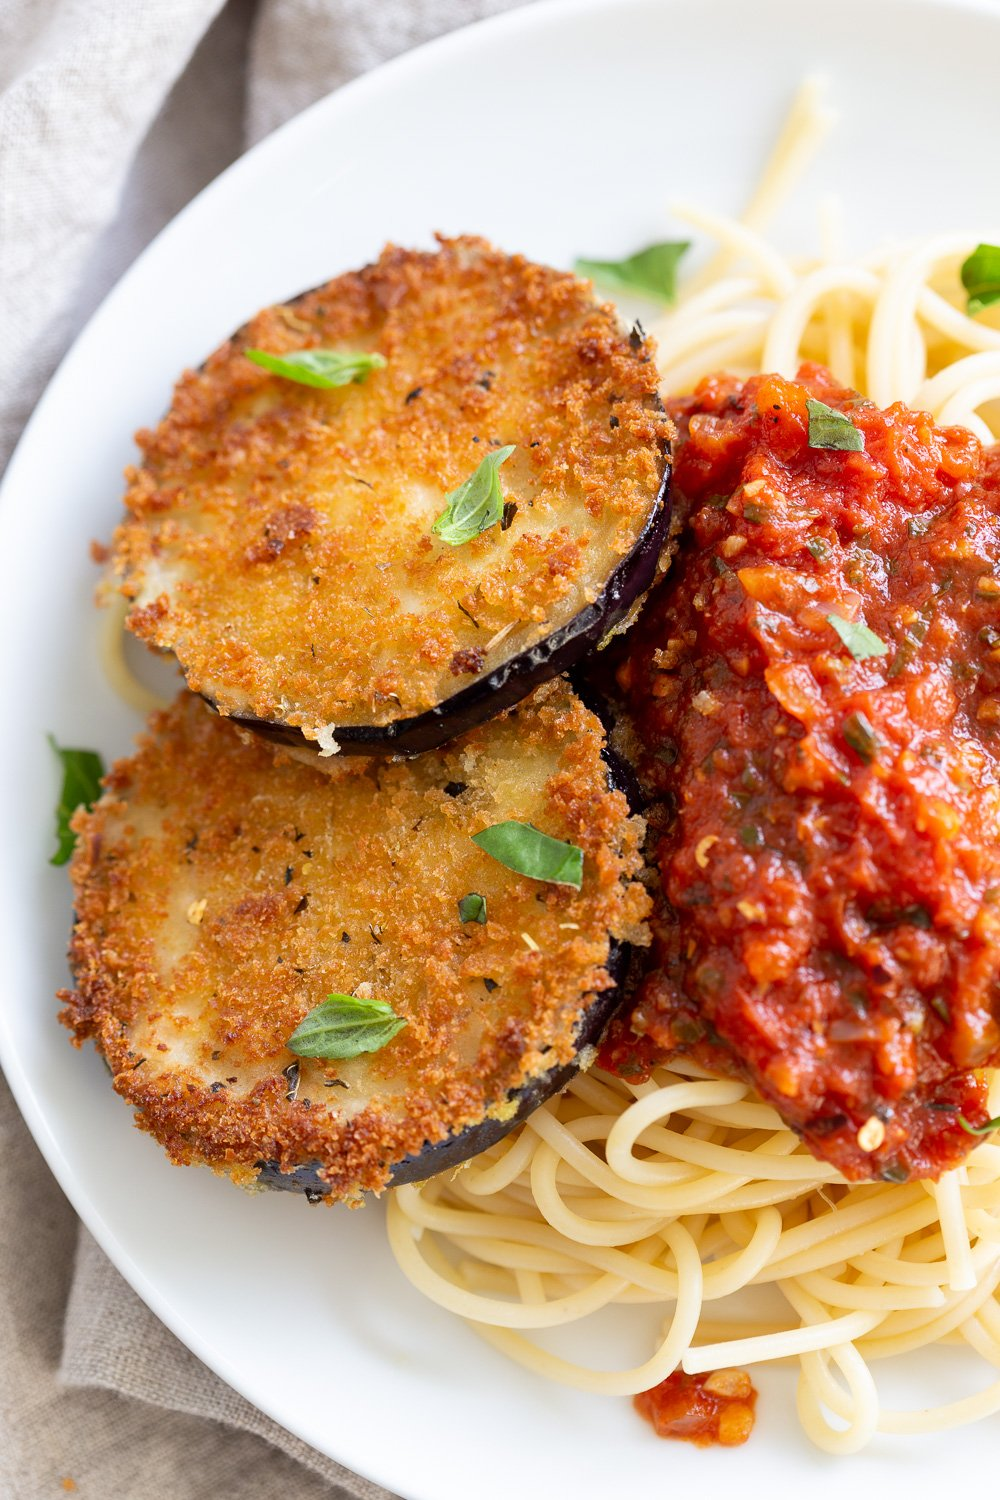 Vegan Eggplant Parmesan with spaghetti in white plate